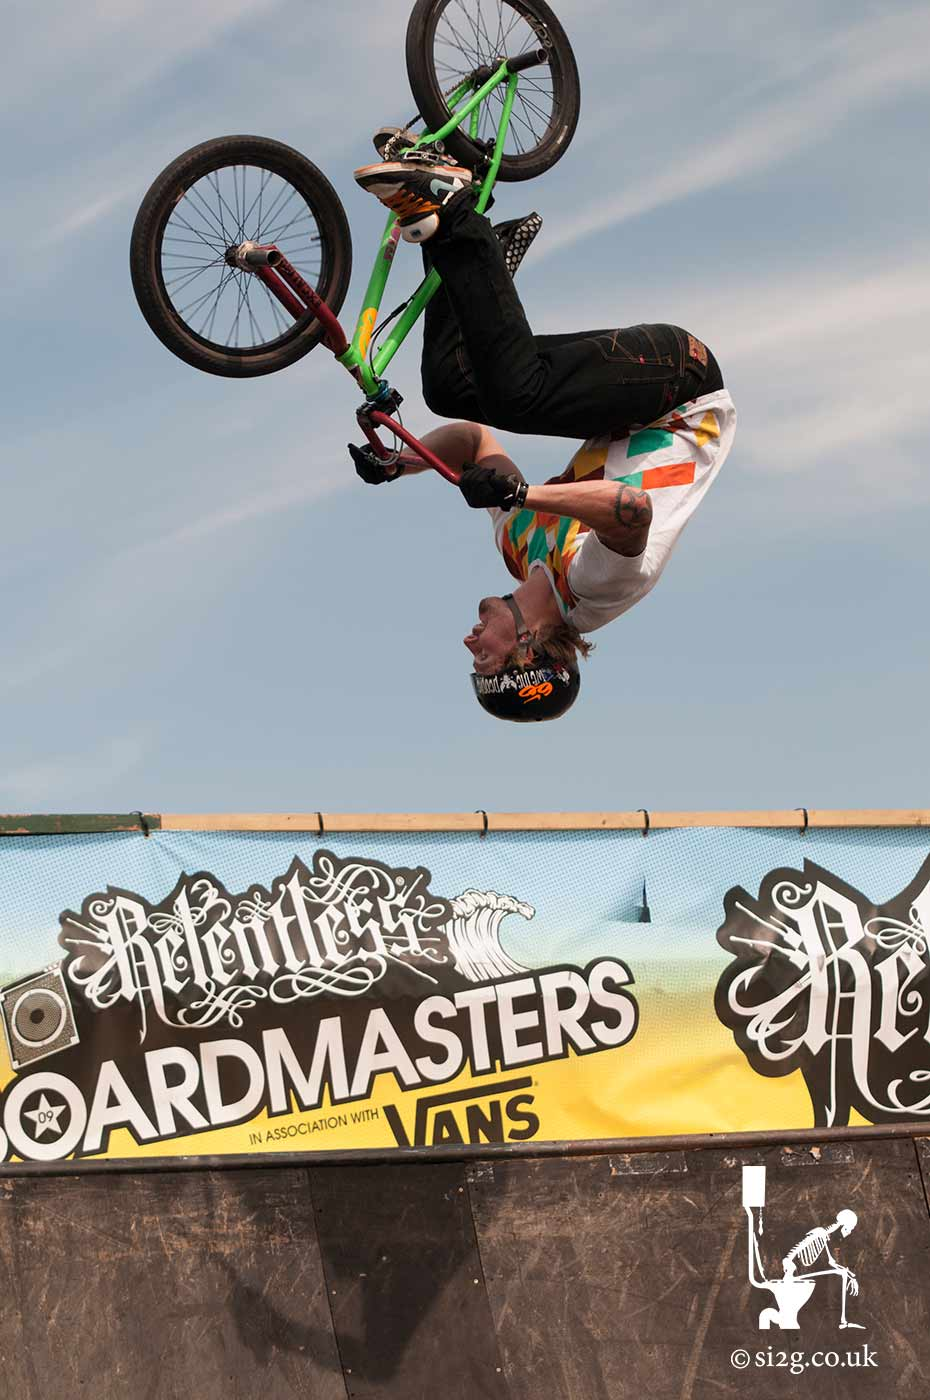 BMX Flair at Newquay Boardmasters - The Boardmasters Festival is an annual affair in Newquay every summer, where you get to see the UK